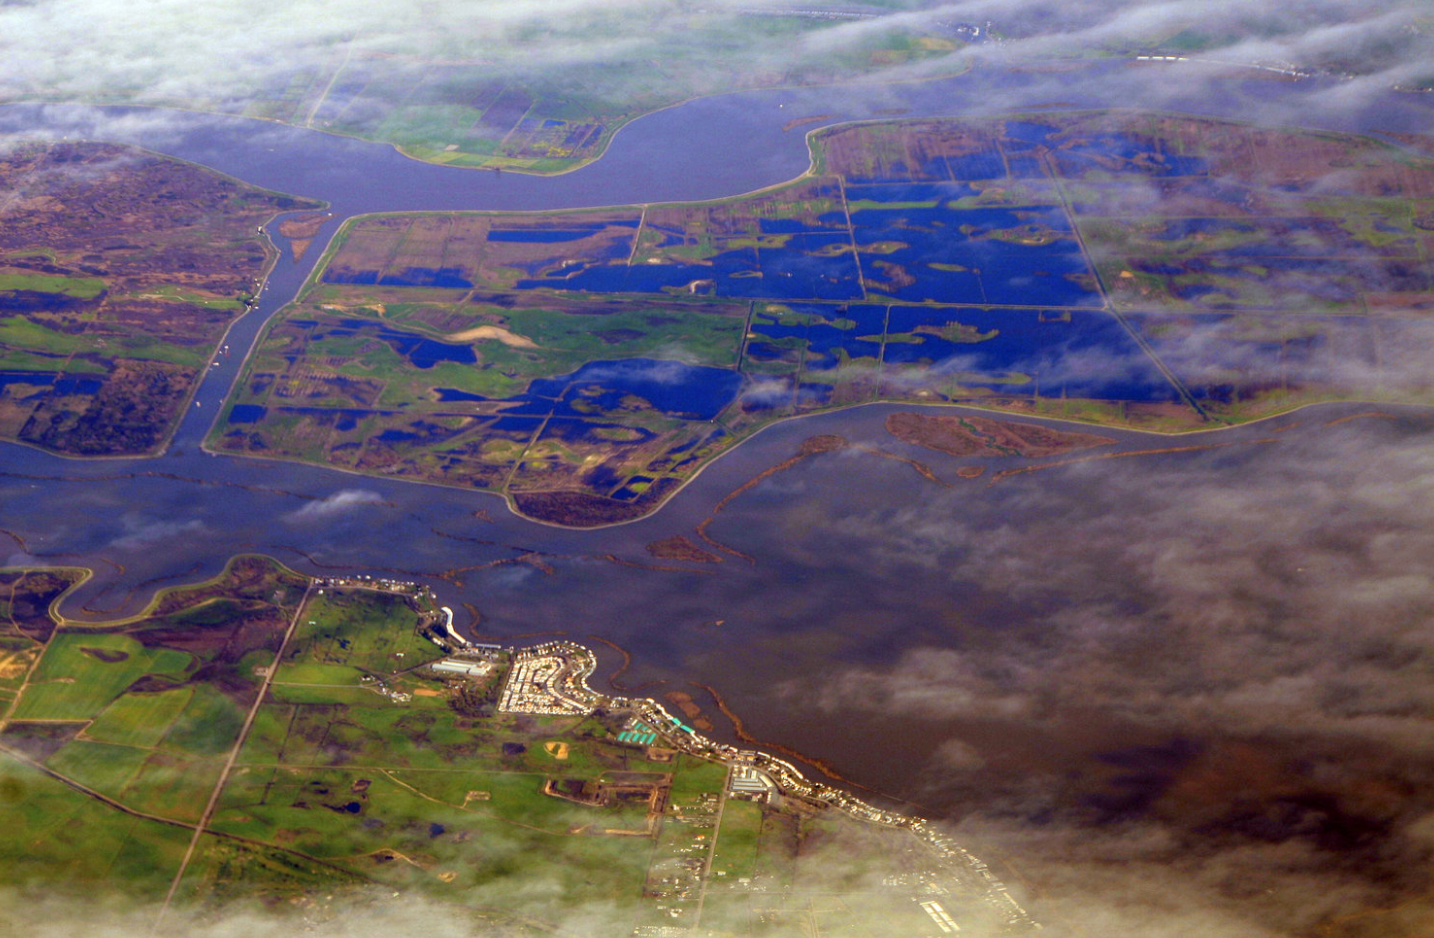 Sacramento, California in the U.S. sits on a delta. It is therefore one of the areas at risk of being submerged but the end of the century if countries don't cut emissions and switch to green power.  ( Doc Searls - Flickr )